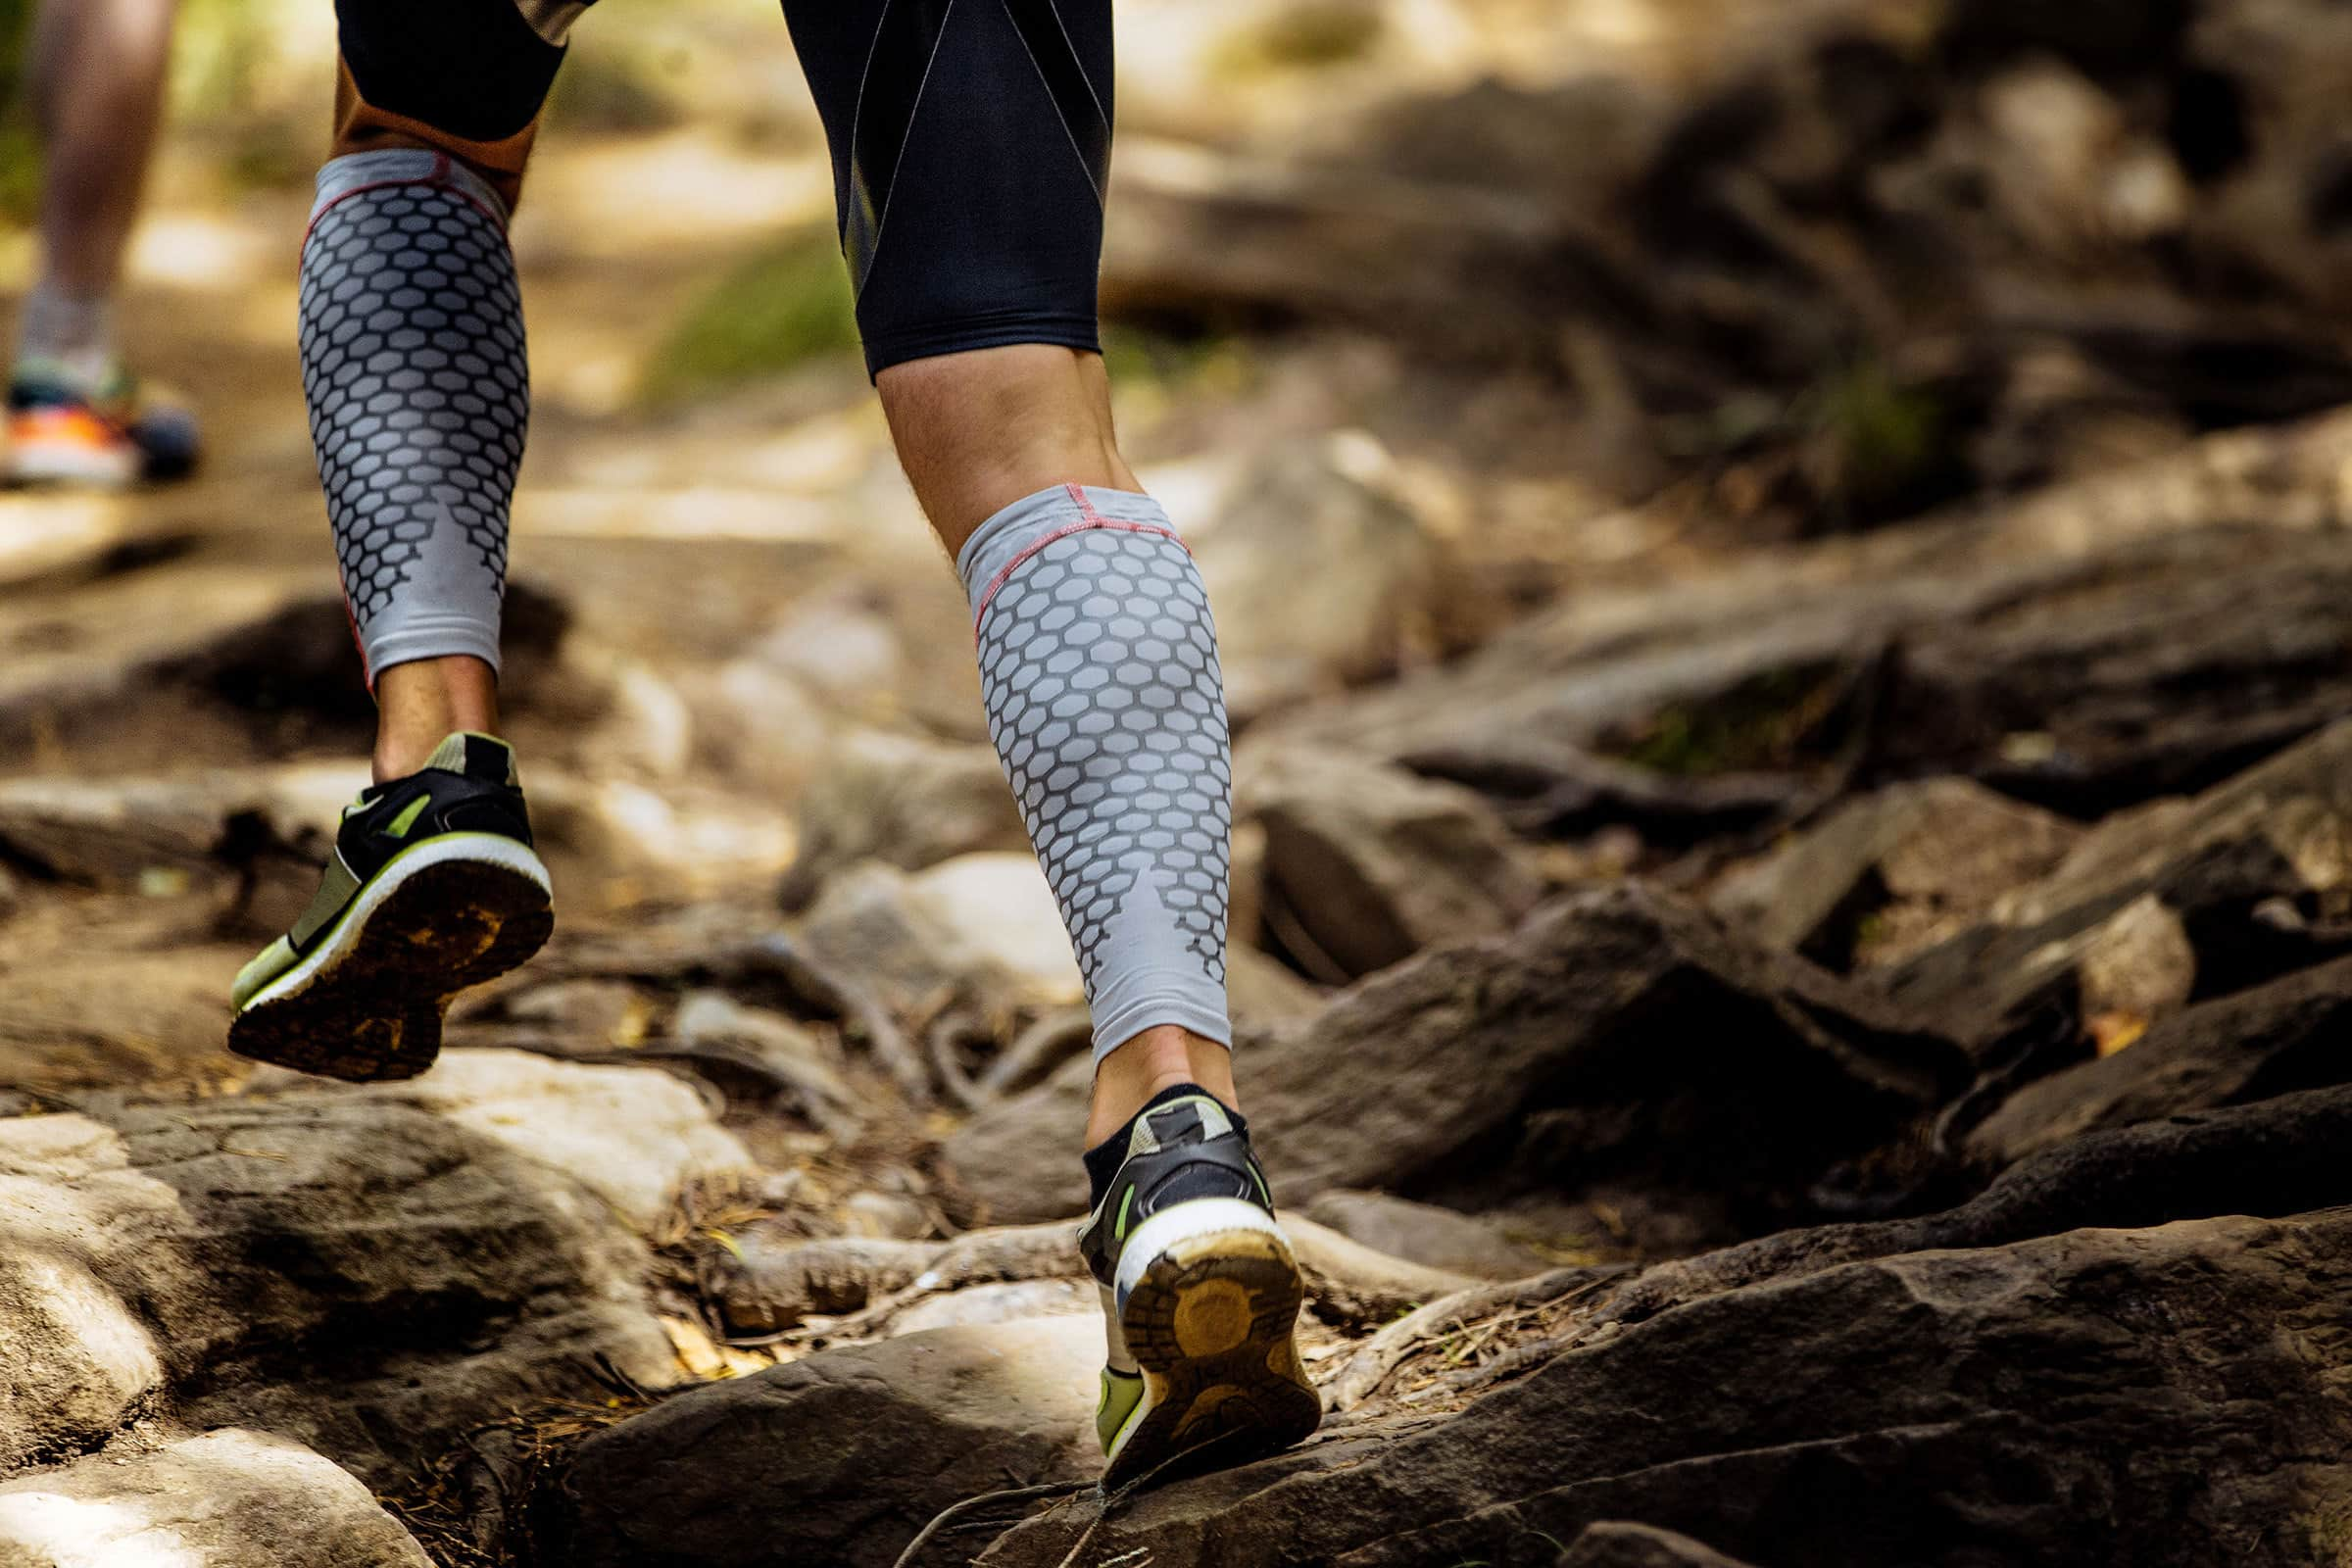 d00b8a691b Cover Image: The Best Calf Compression Sleeves for Shin Splints